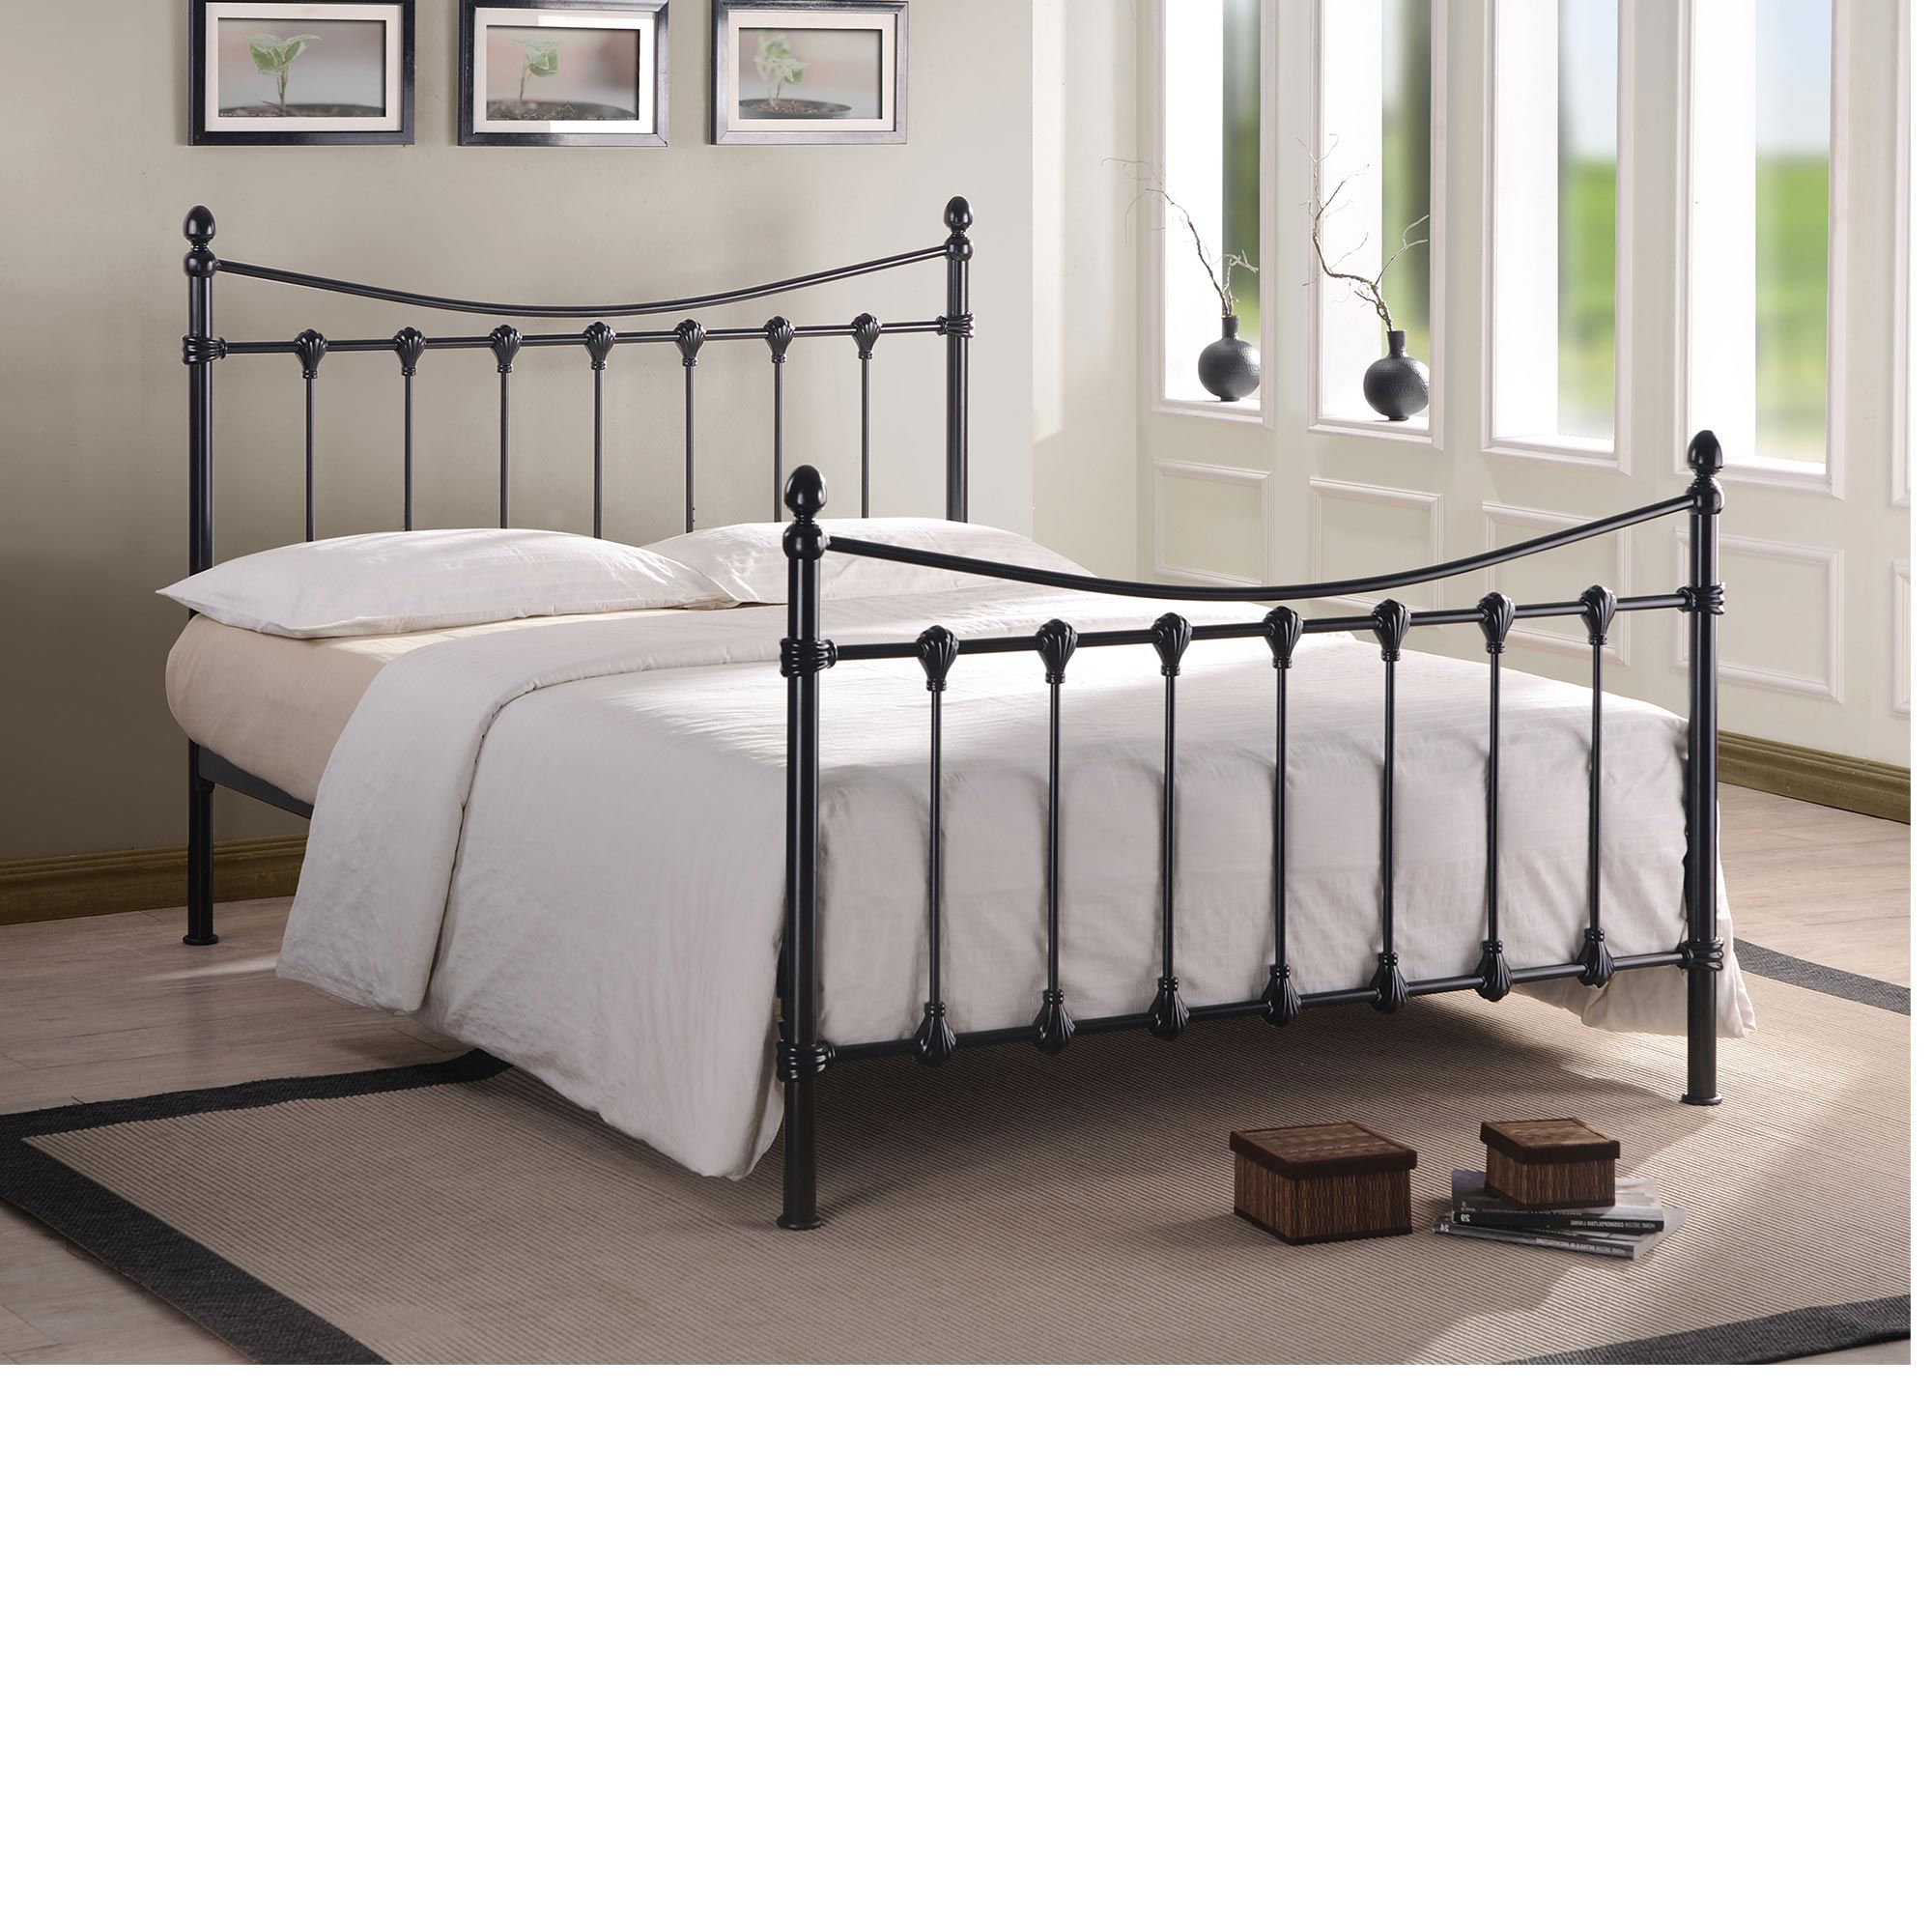 Best Black Metal Queen Bed Frame With White Bedding And Grey 400 x 300